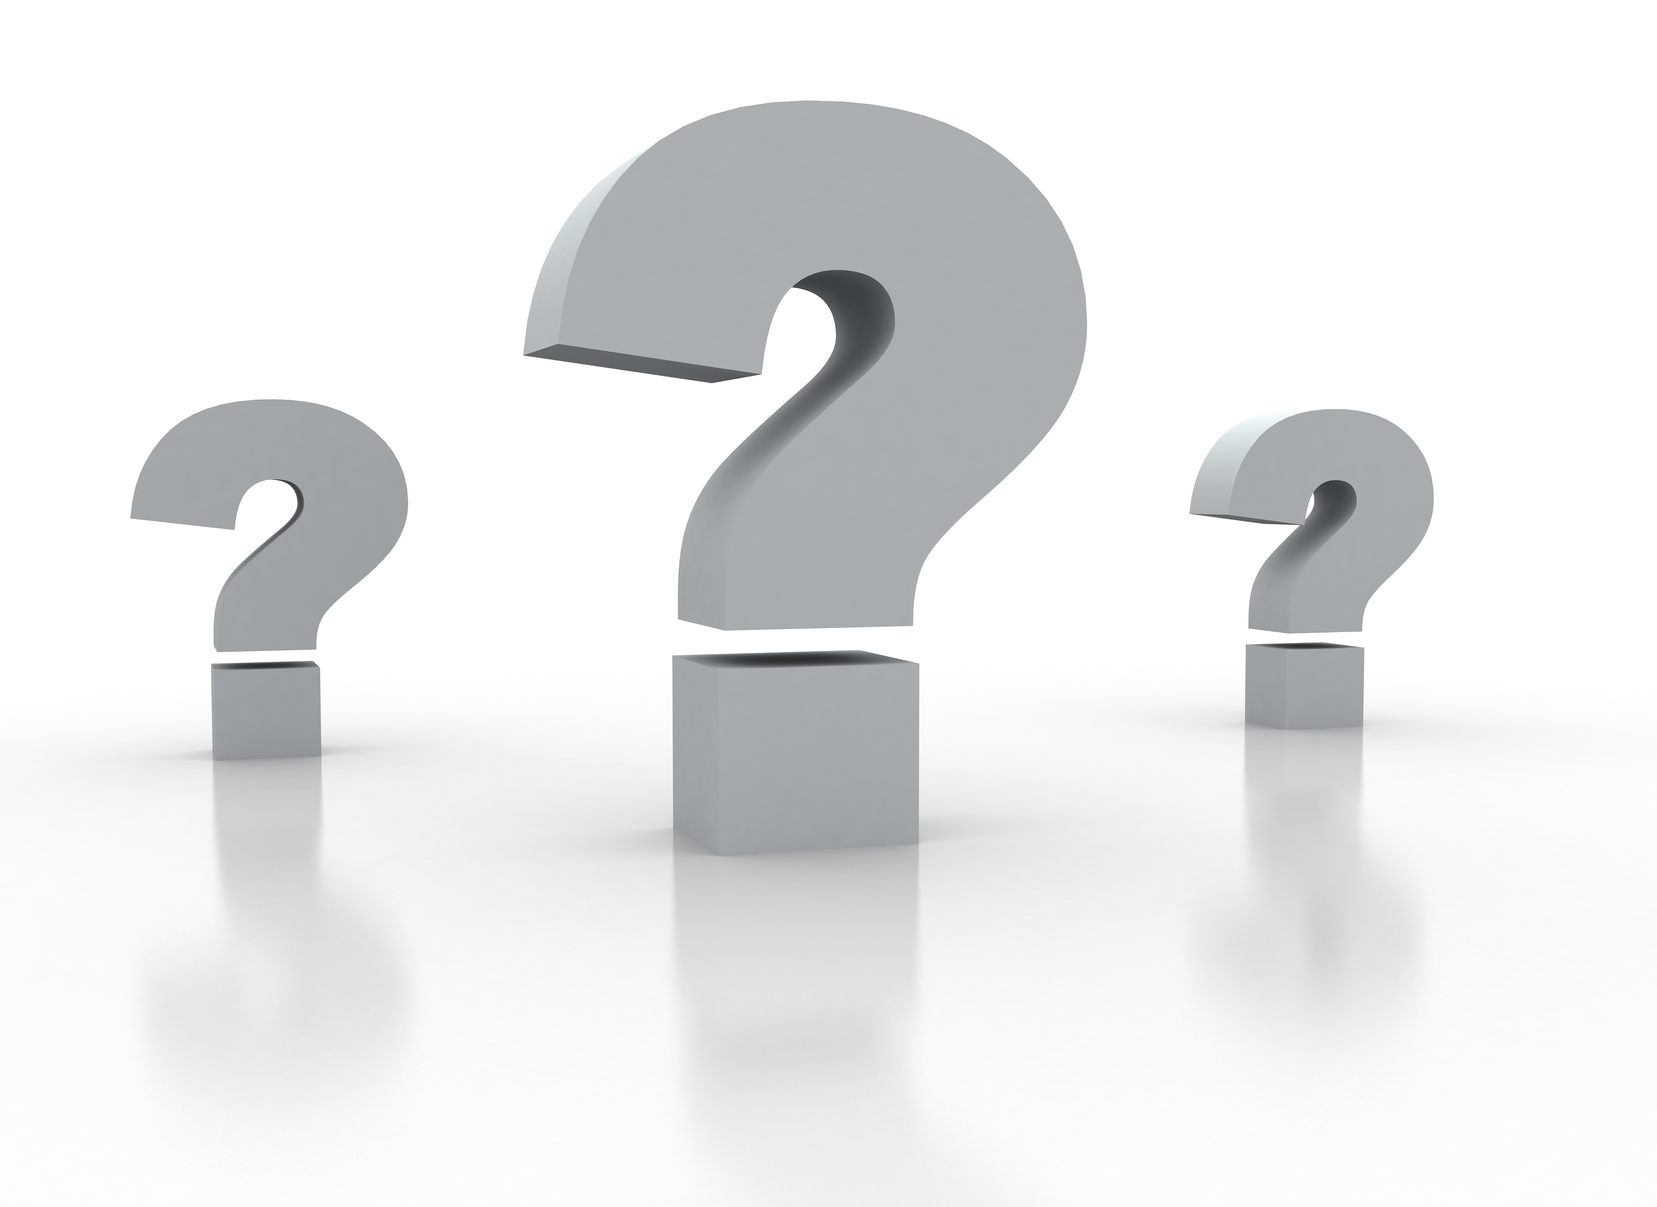 Three Question marks on white background